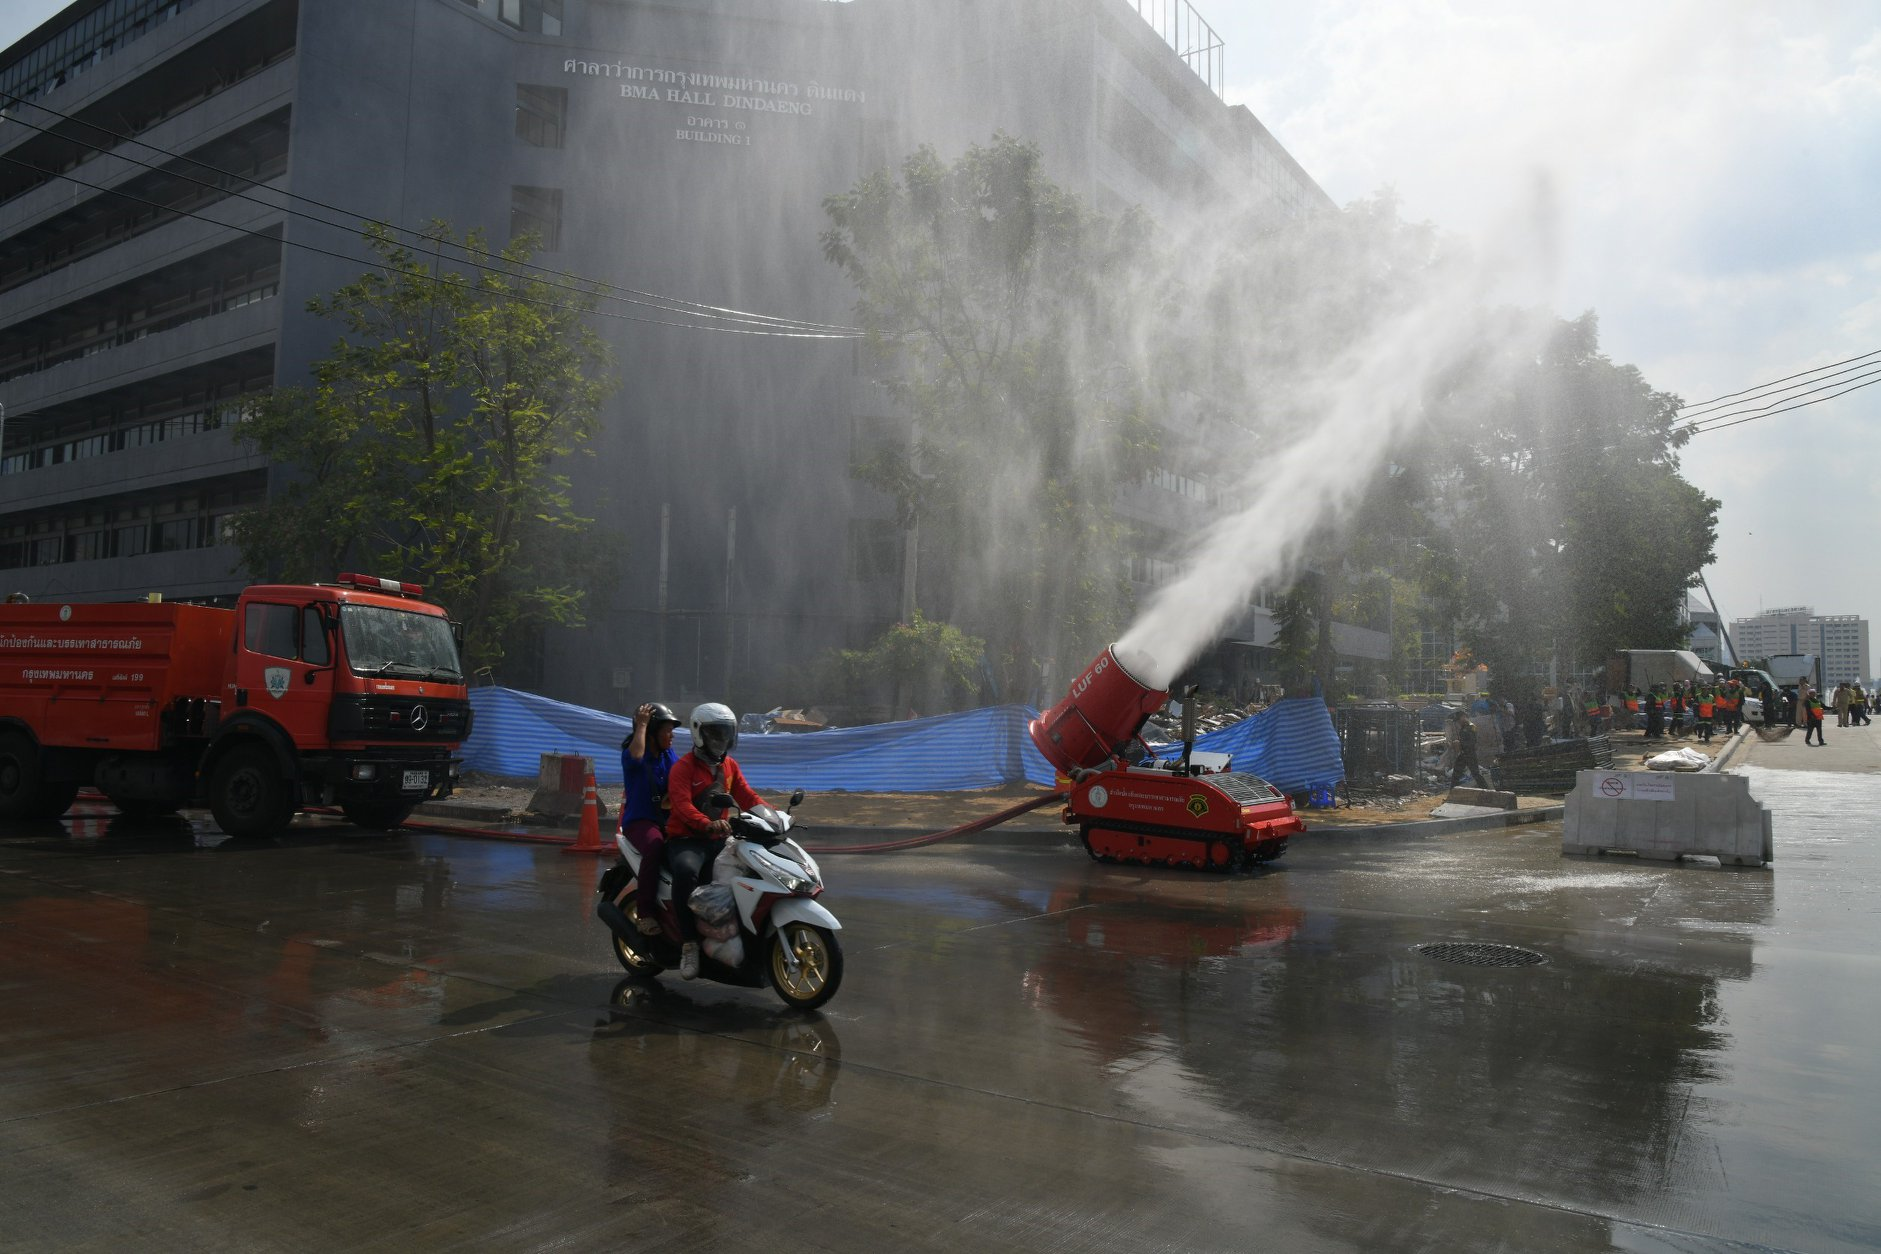 "City Hall workers spray water today in front of the Din Daeng police station in an attempt to reduce smog in the air. Bangkok's air quality was at ""moderate"" level Monday afternoon as officials warned pollution still exceeds acceptable standards in several areas, including Din Daeng, Thonburi and Bang Kapi."